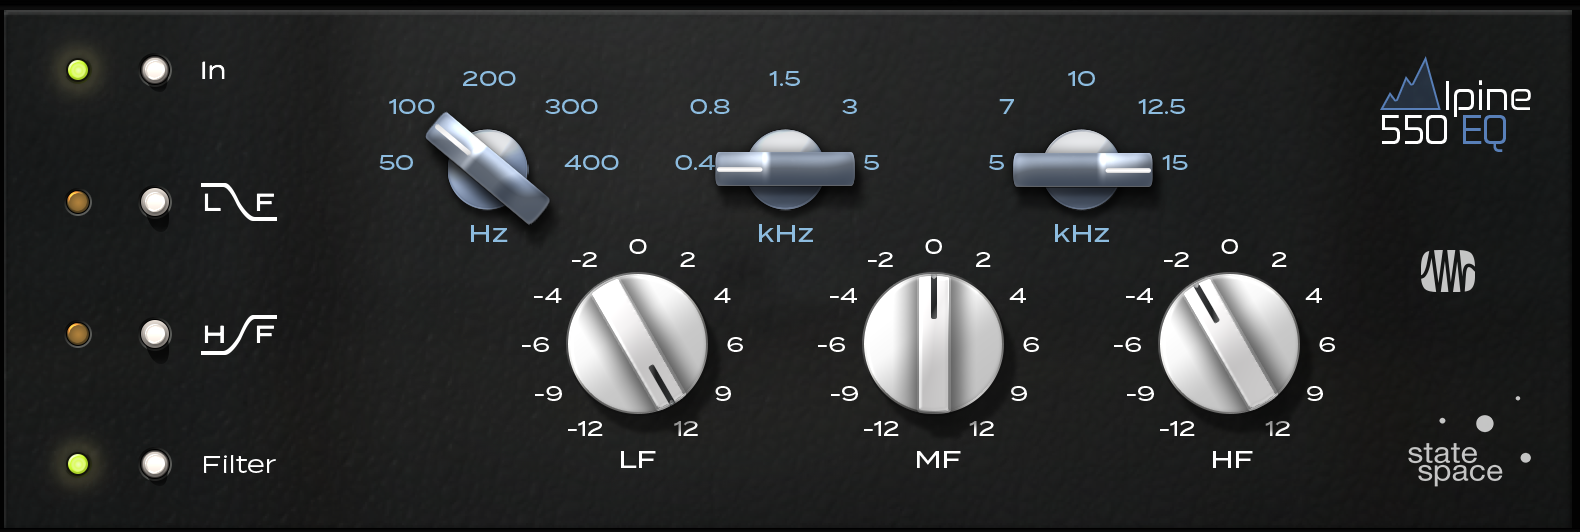 PreSonus Alpine EQ-550 Fat Channel Plug-in [Online Code] - Plug Eq In Vst